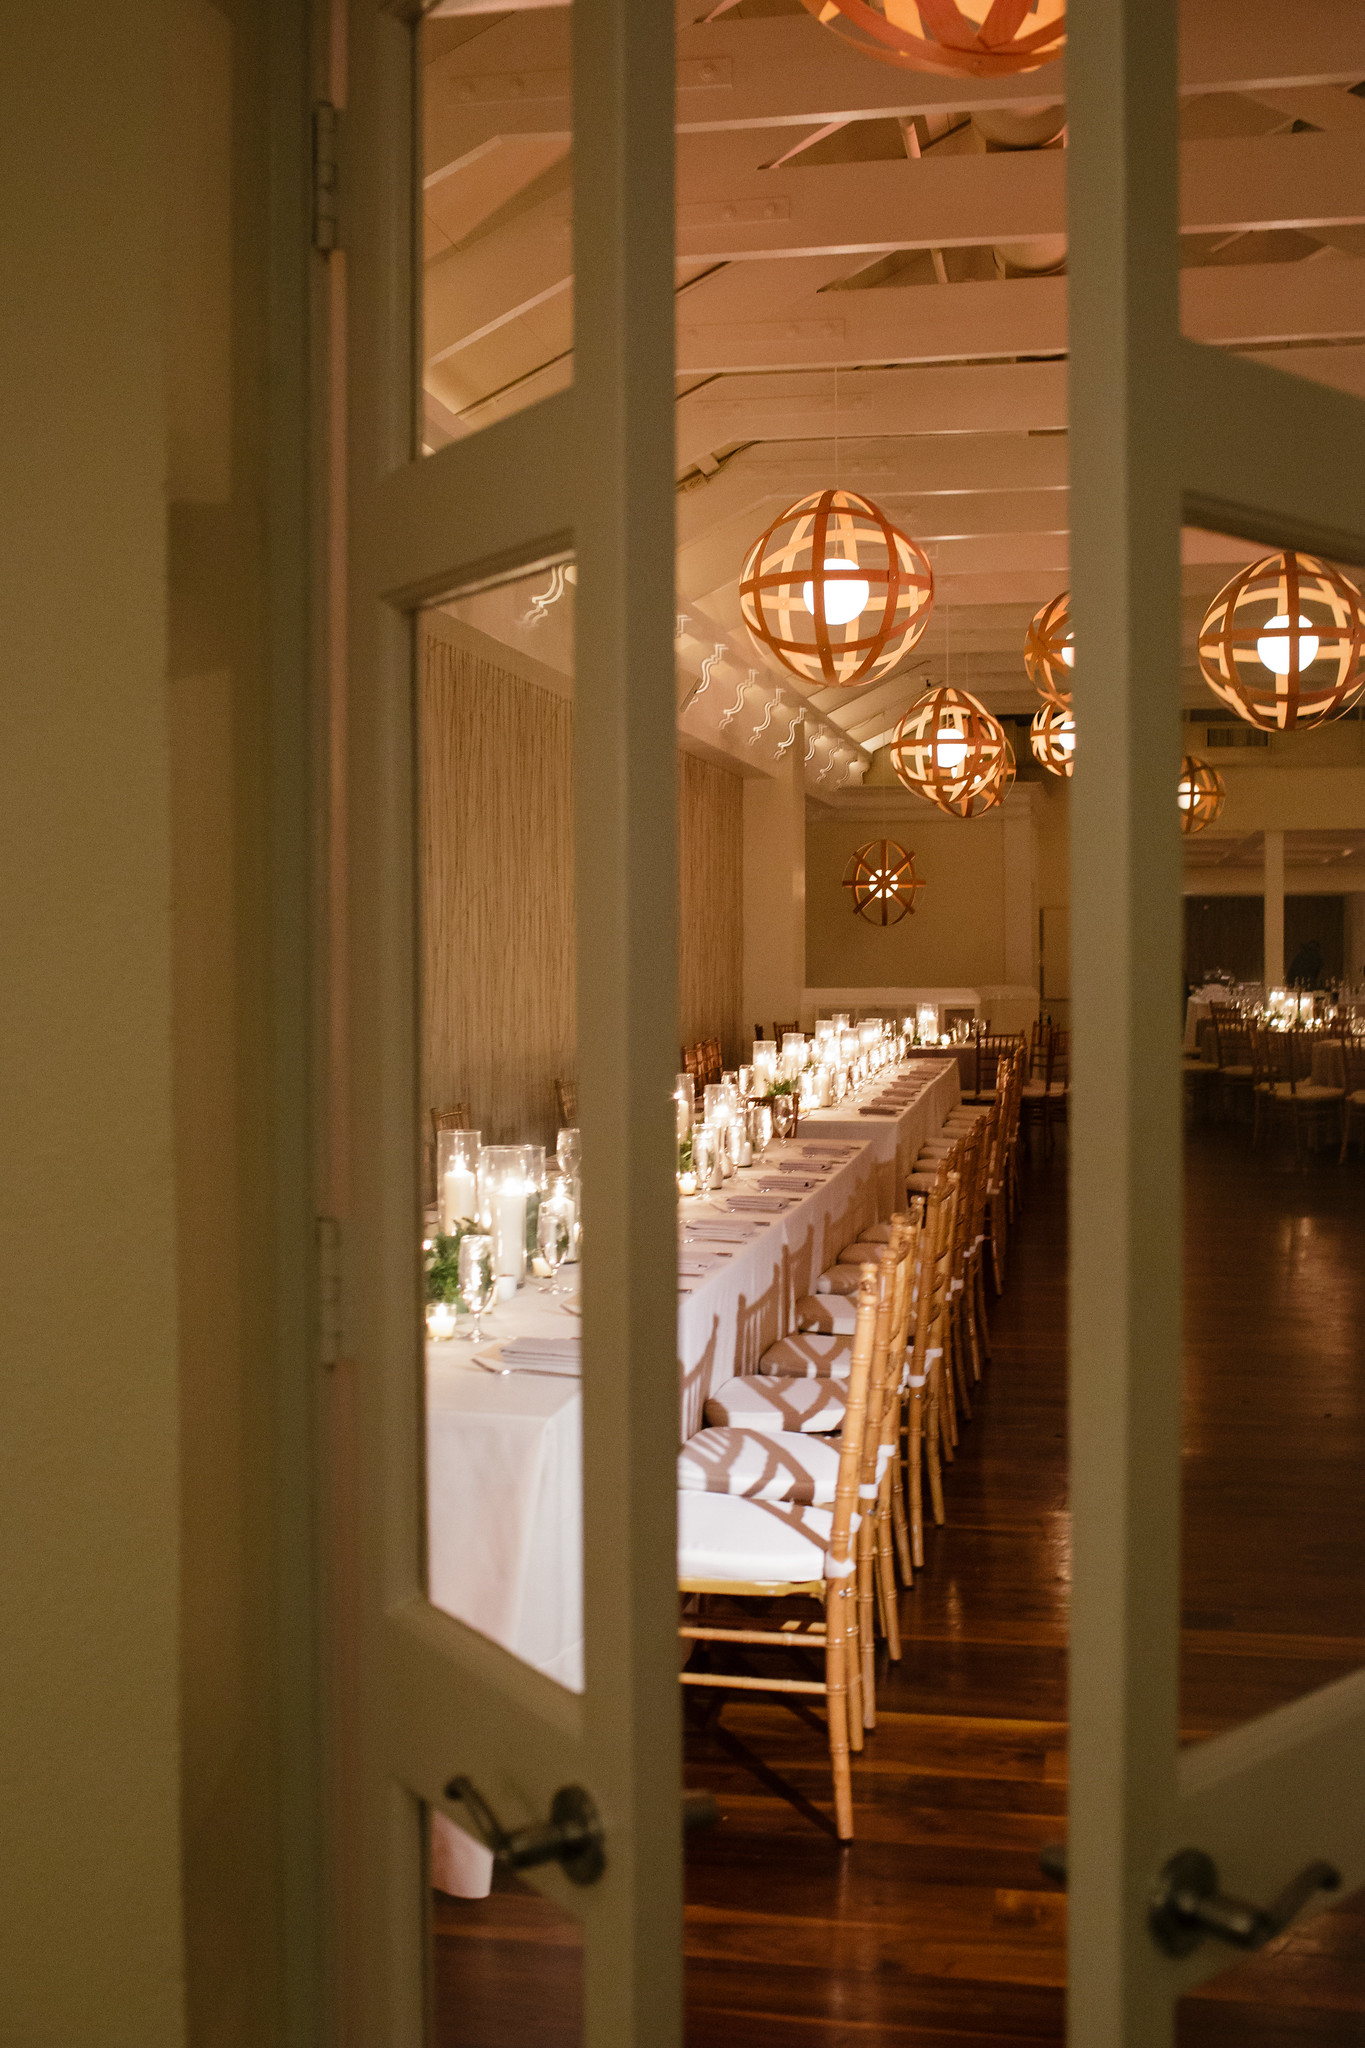 Table setting with wild flowers and draped lighting hanging overhead.